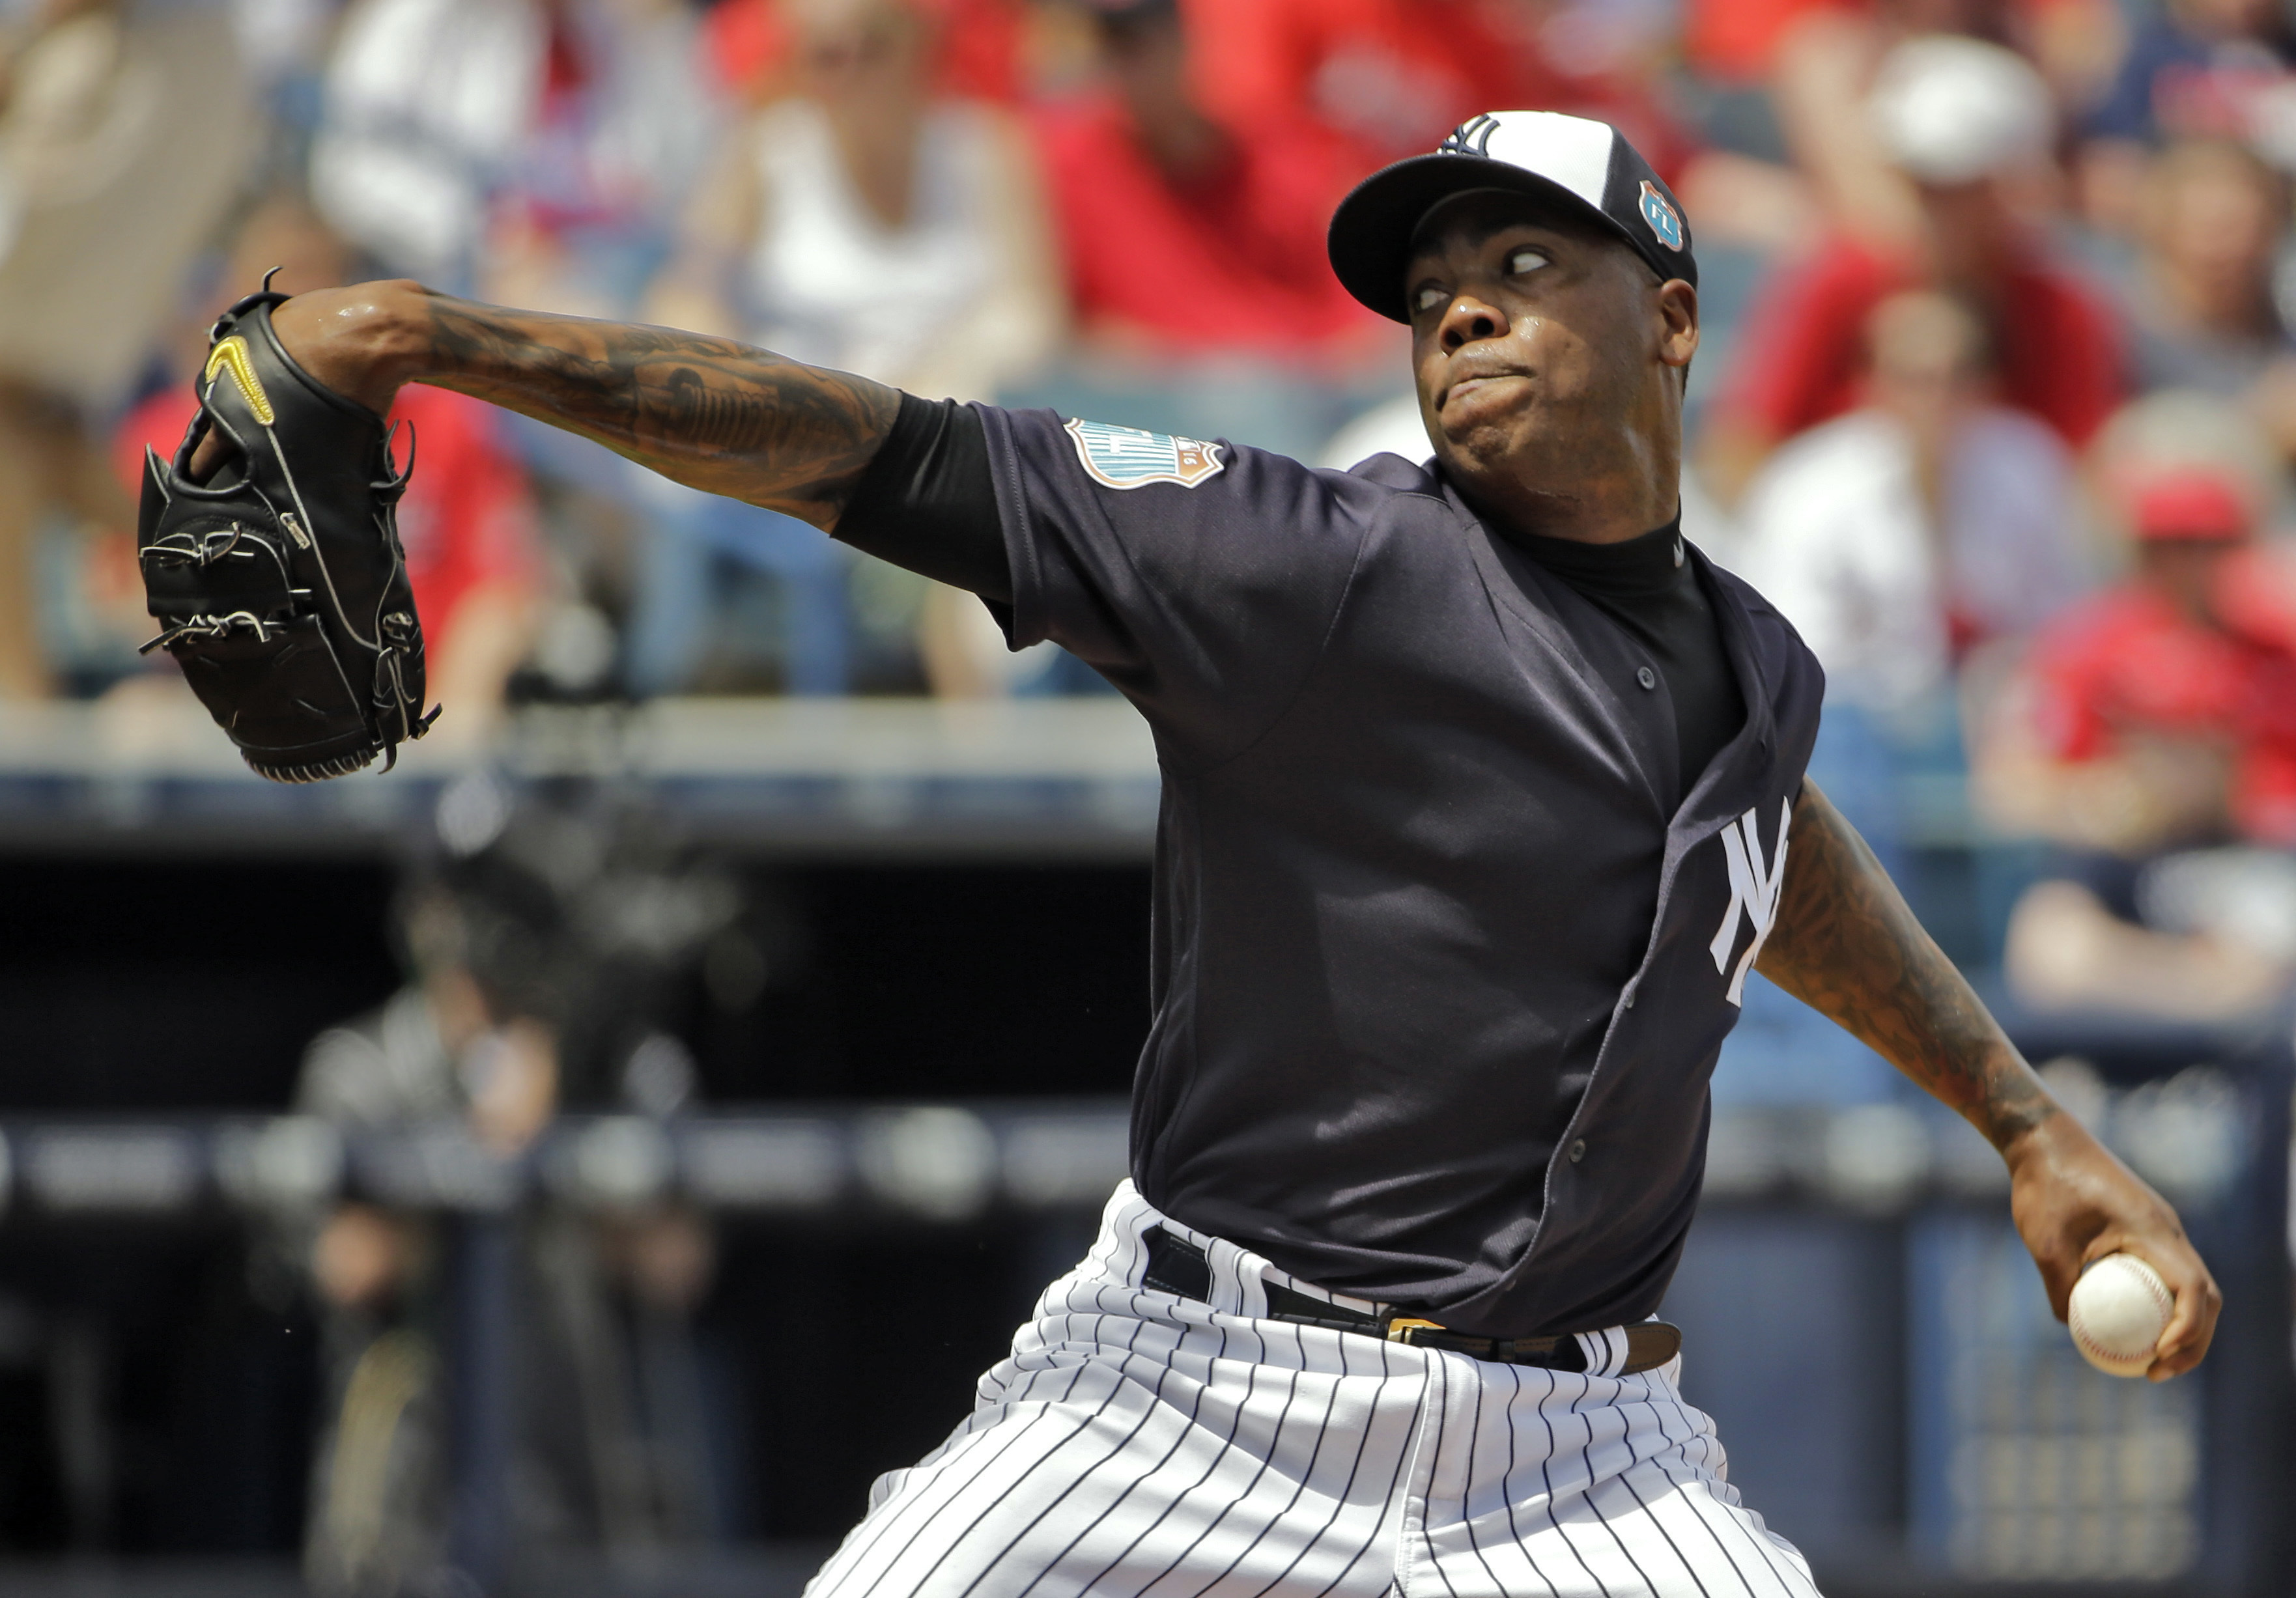 New York Yankees' Aroldis Chapman pitches to the St. Louis Cardinals during the sixth inning of a spring training baseball game Thursday, March 31, 2016, in Tampa, Fla. (AP Photo/Chris O'Meara)